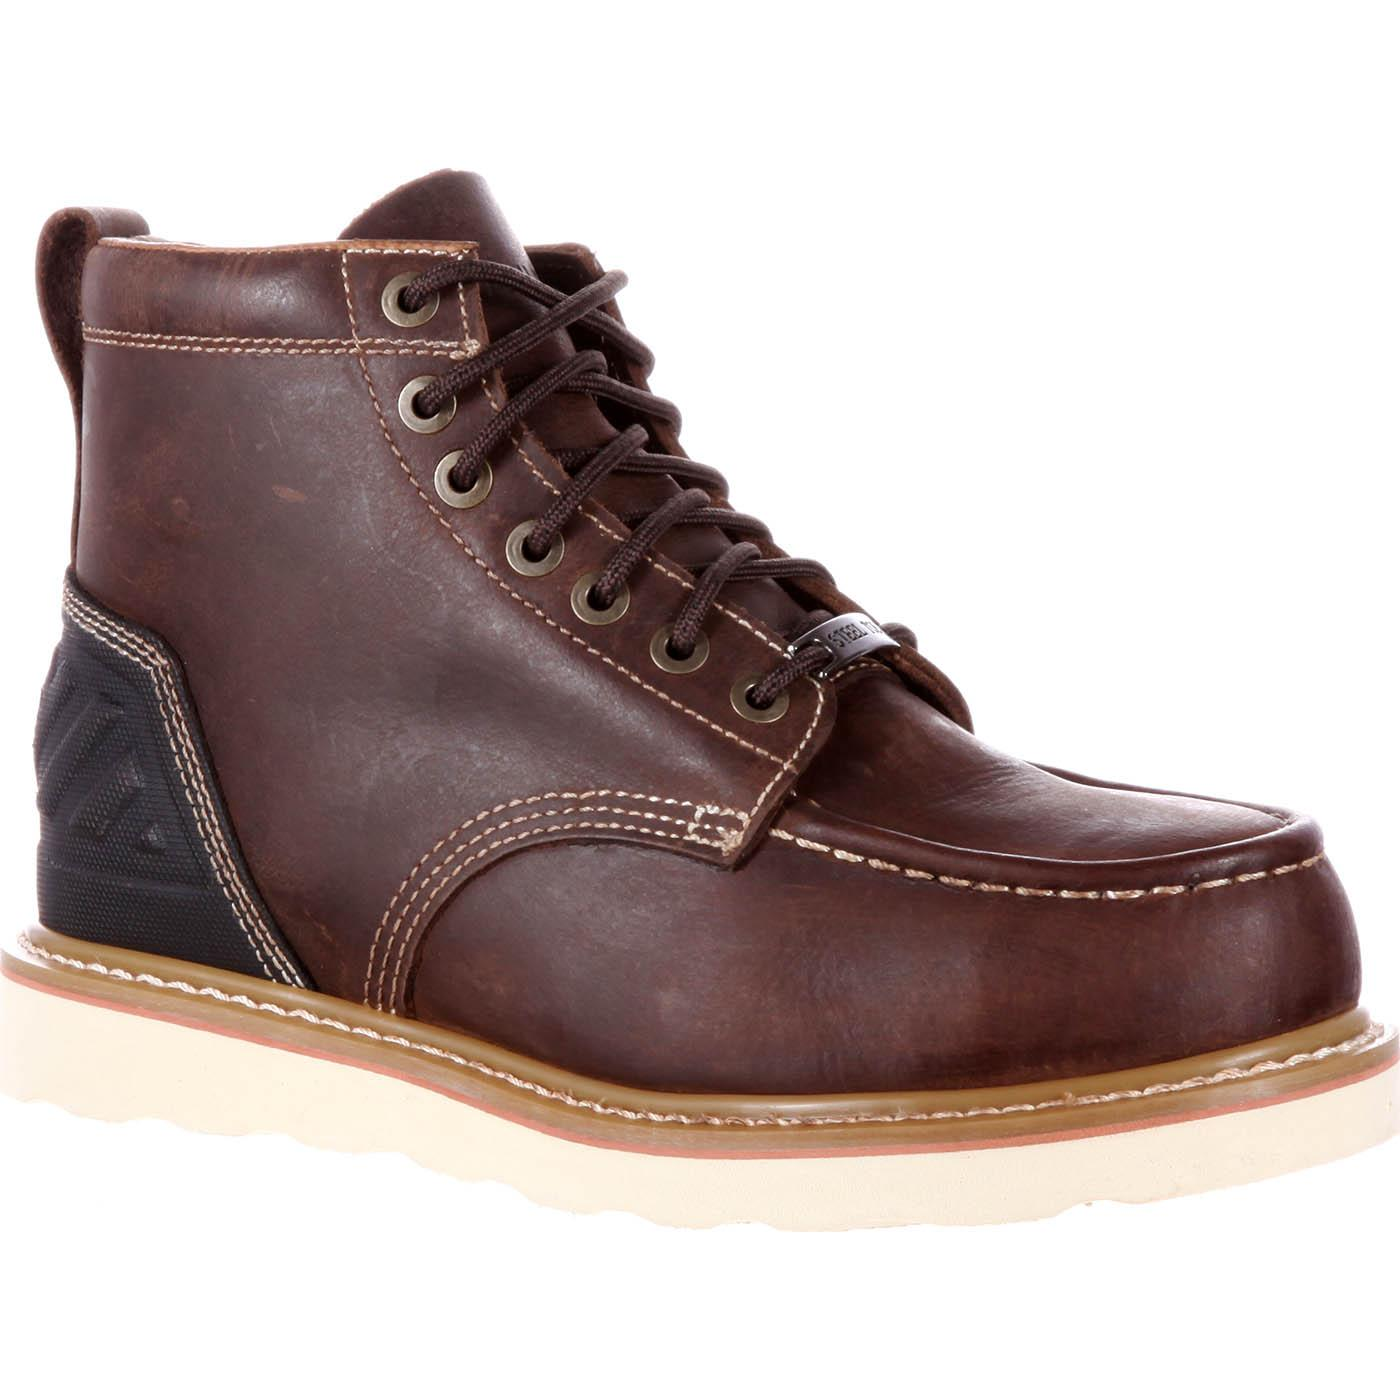 Dark Brown Steel Toe Wedge Work Boots - Stanley Striker